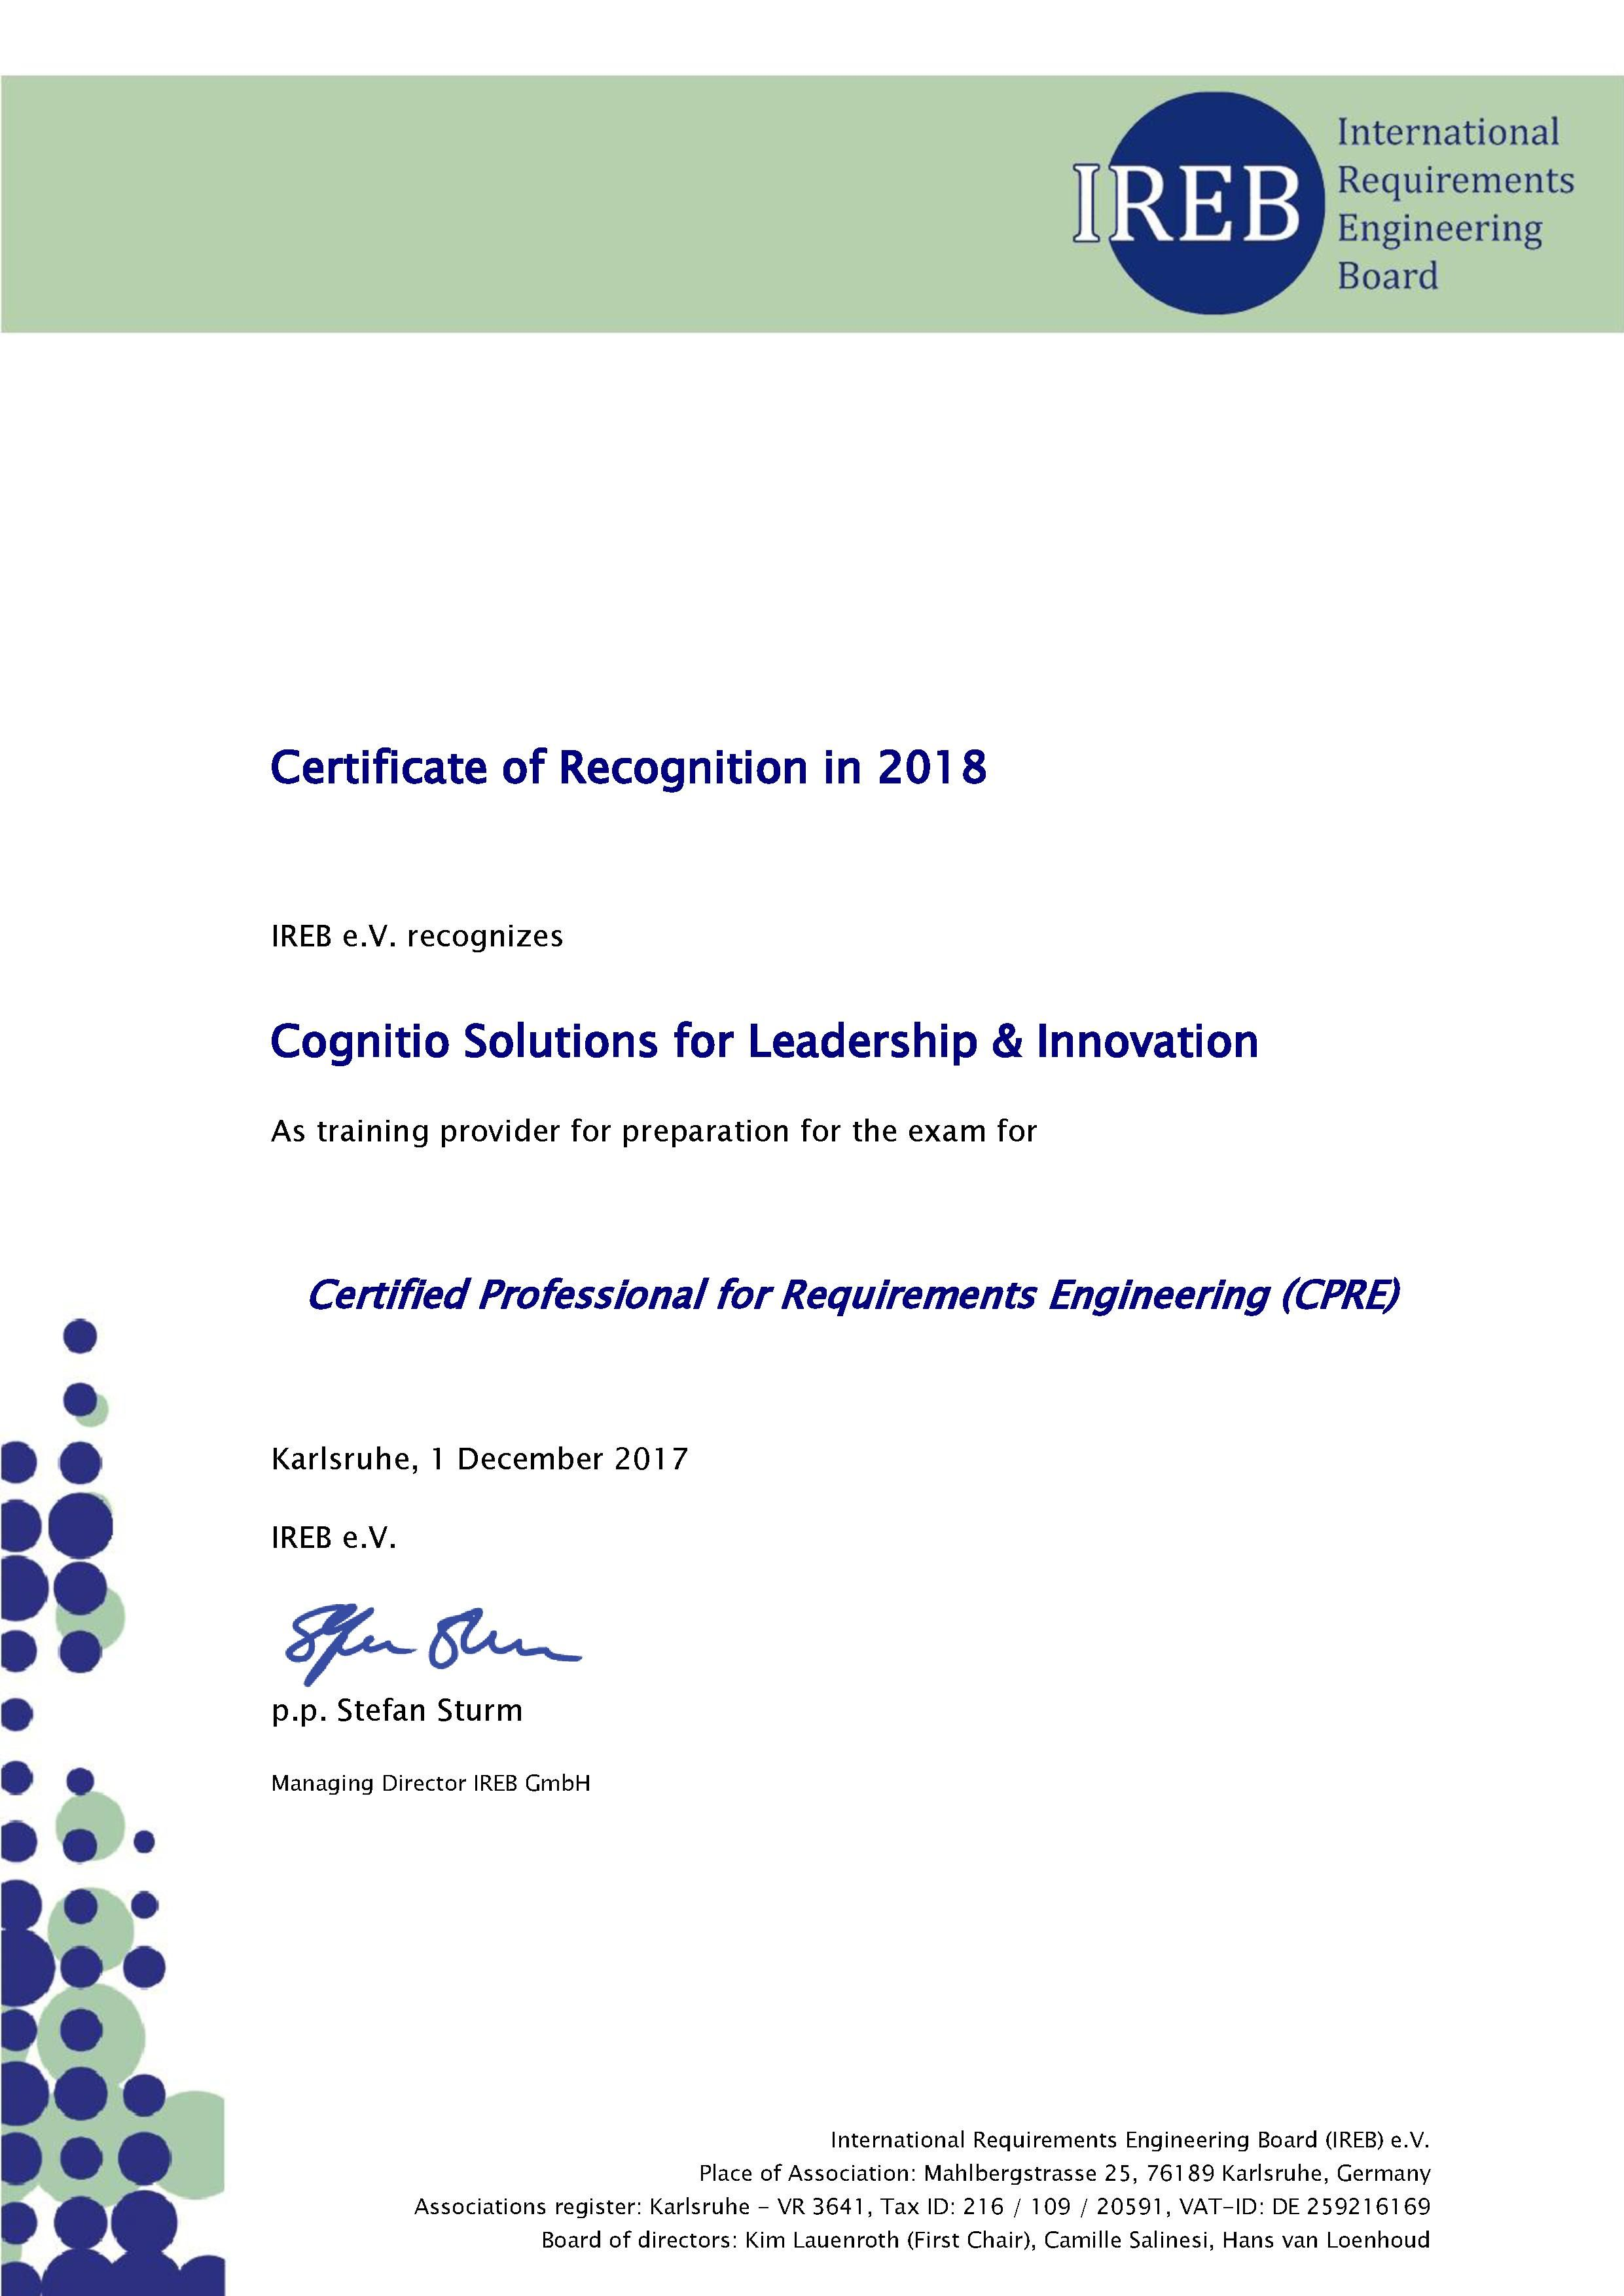 The #Certified #Professional for #Requirements #Engineering (CPRE